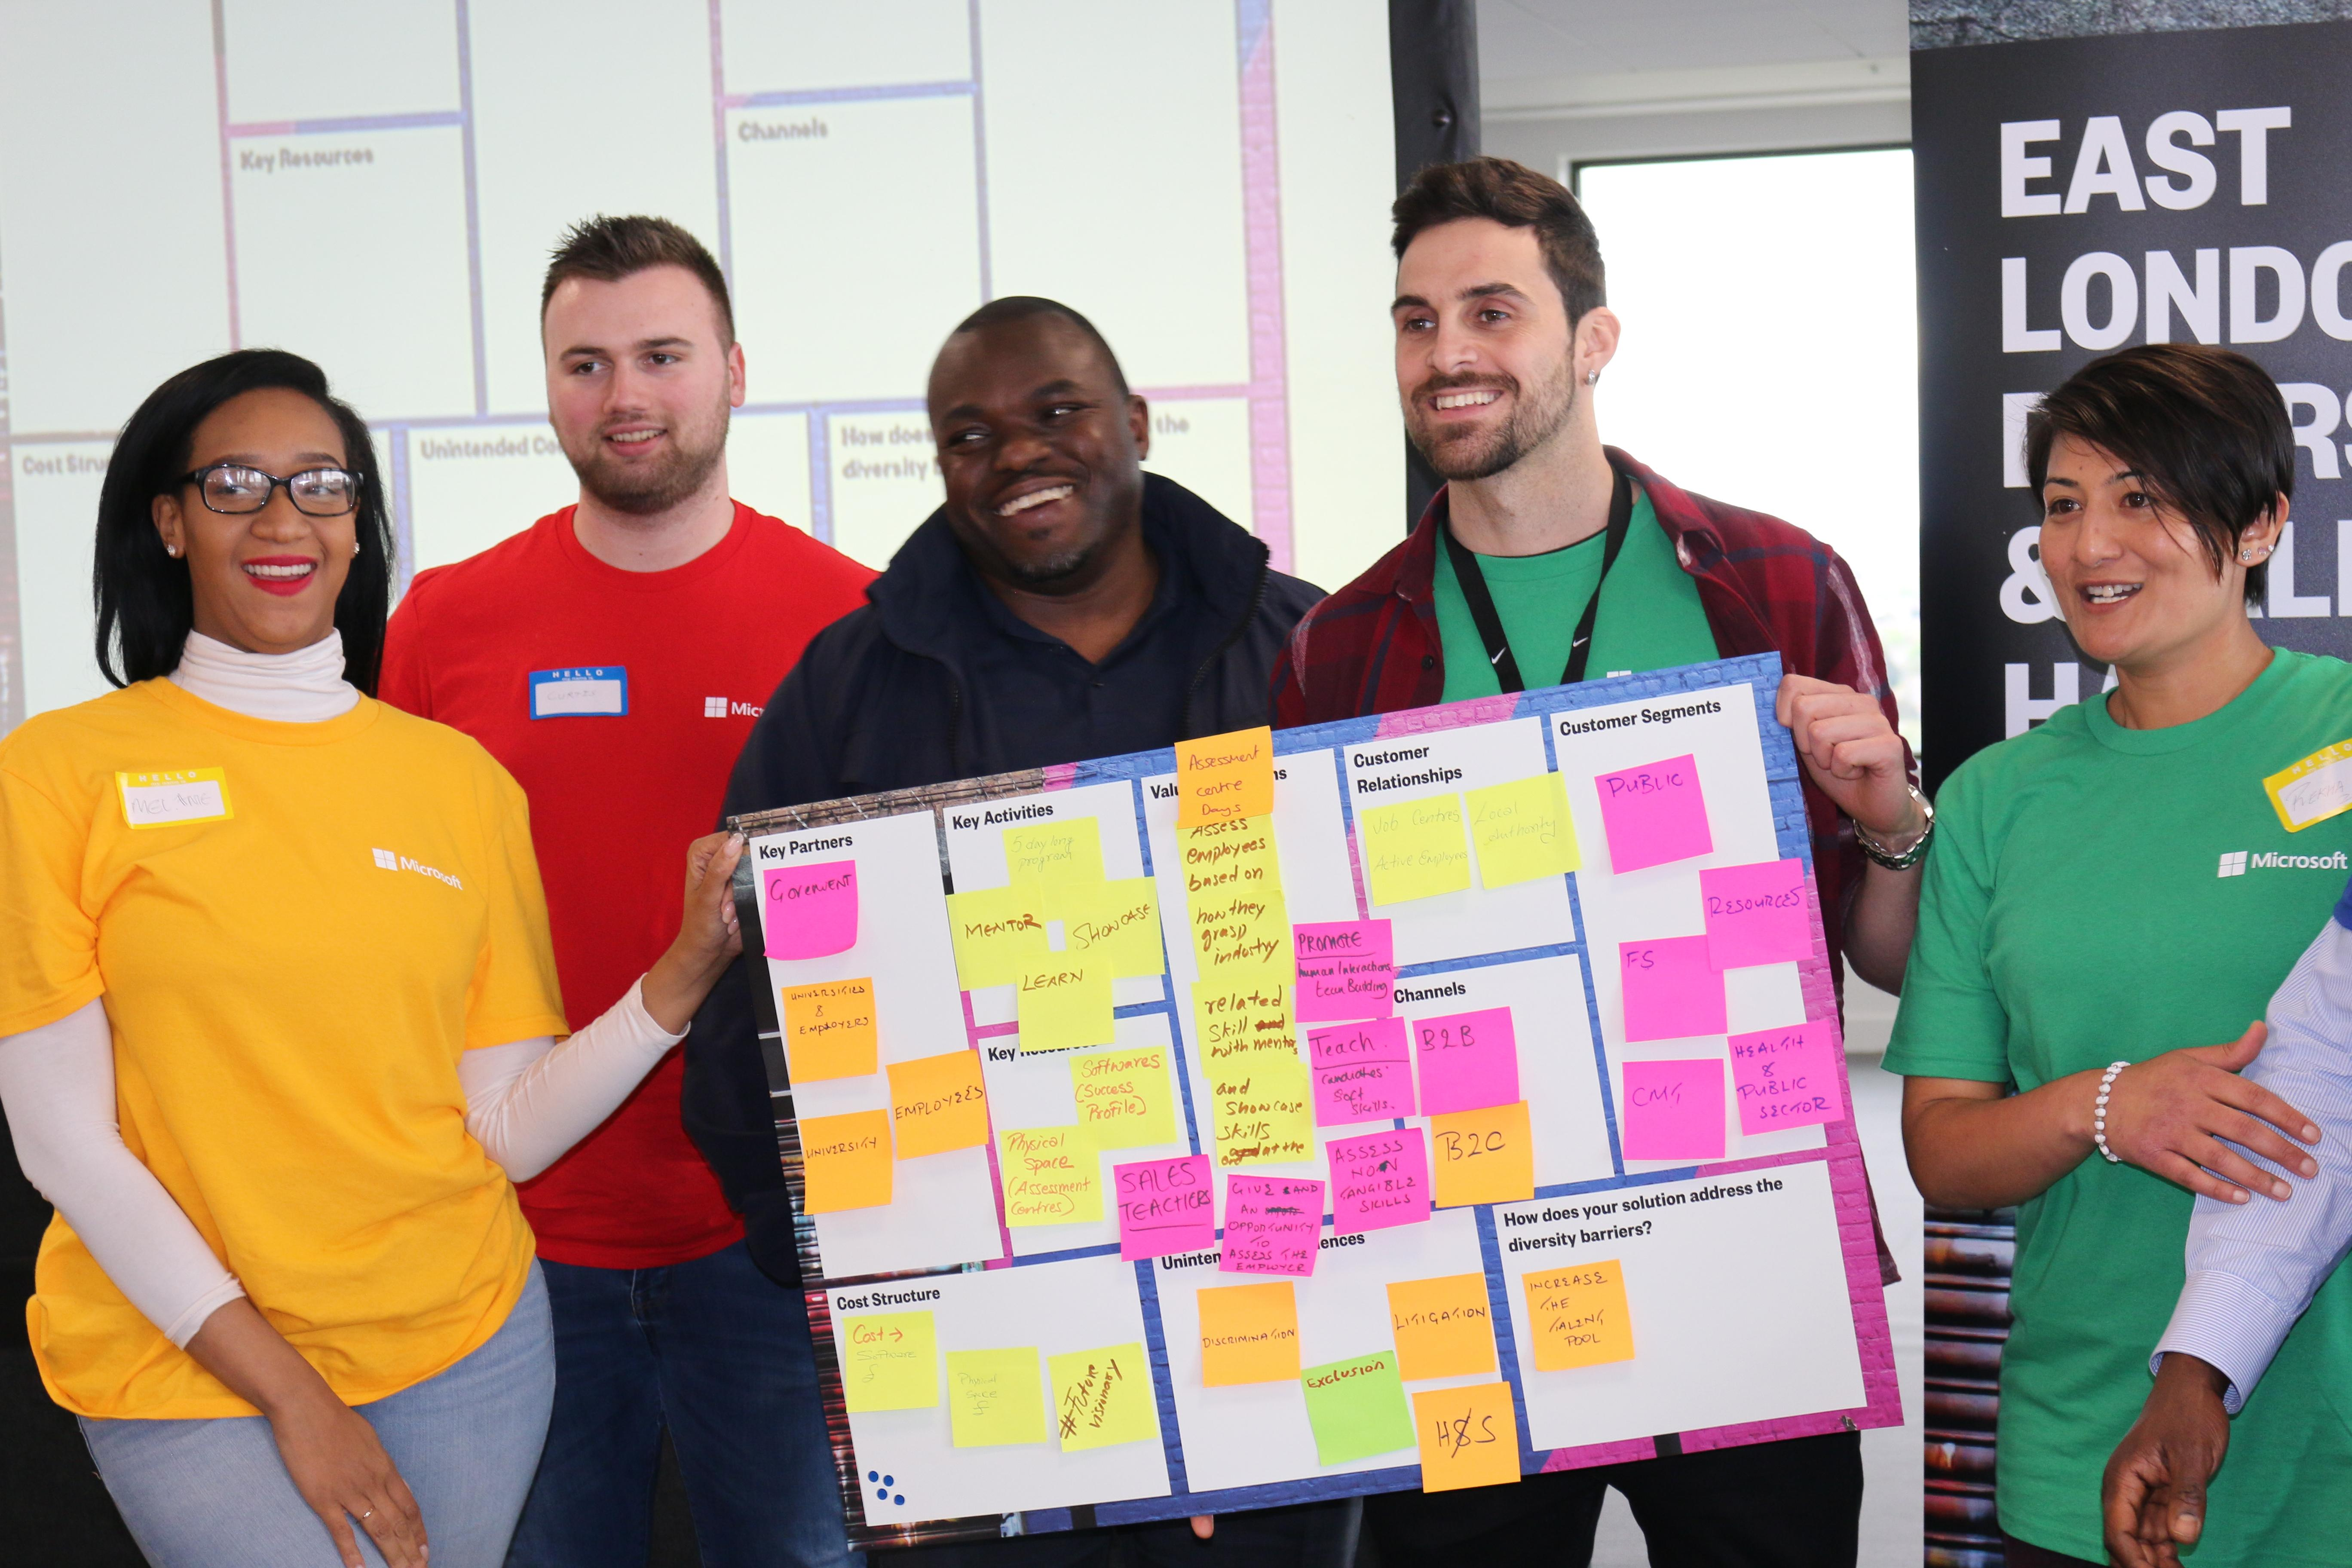 A group of people holding up an idea board